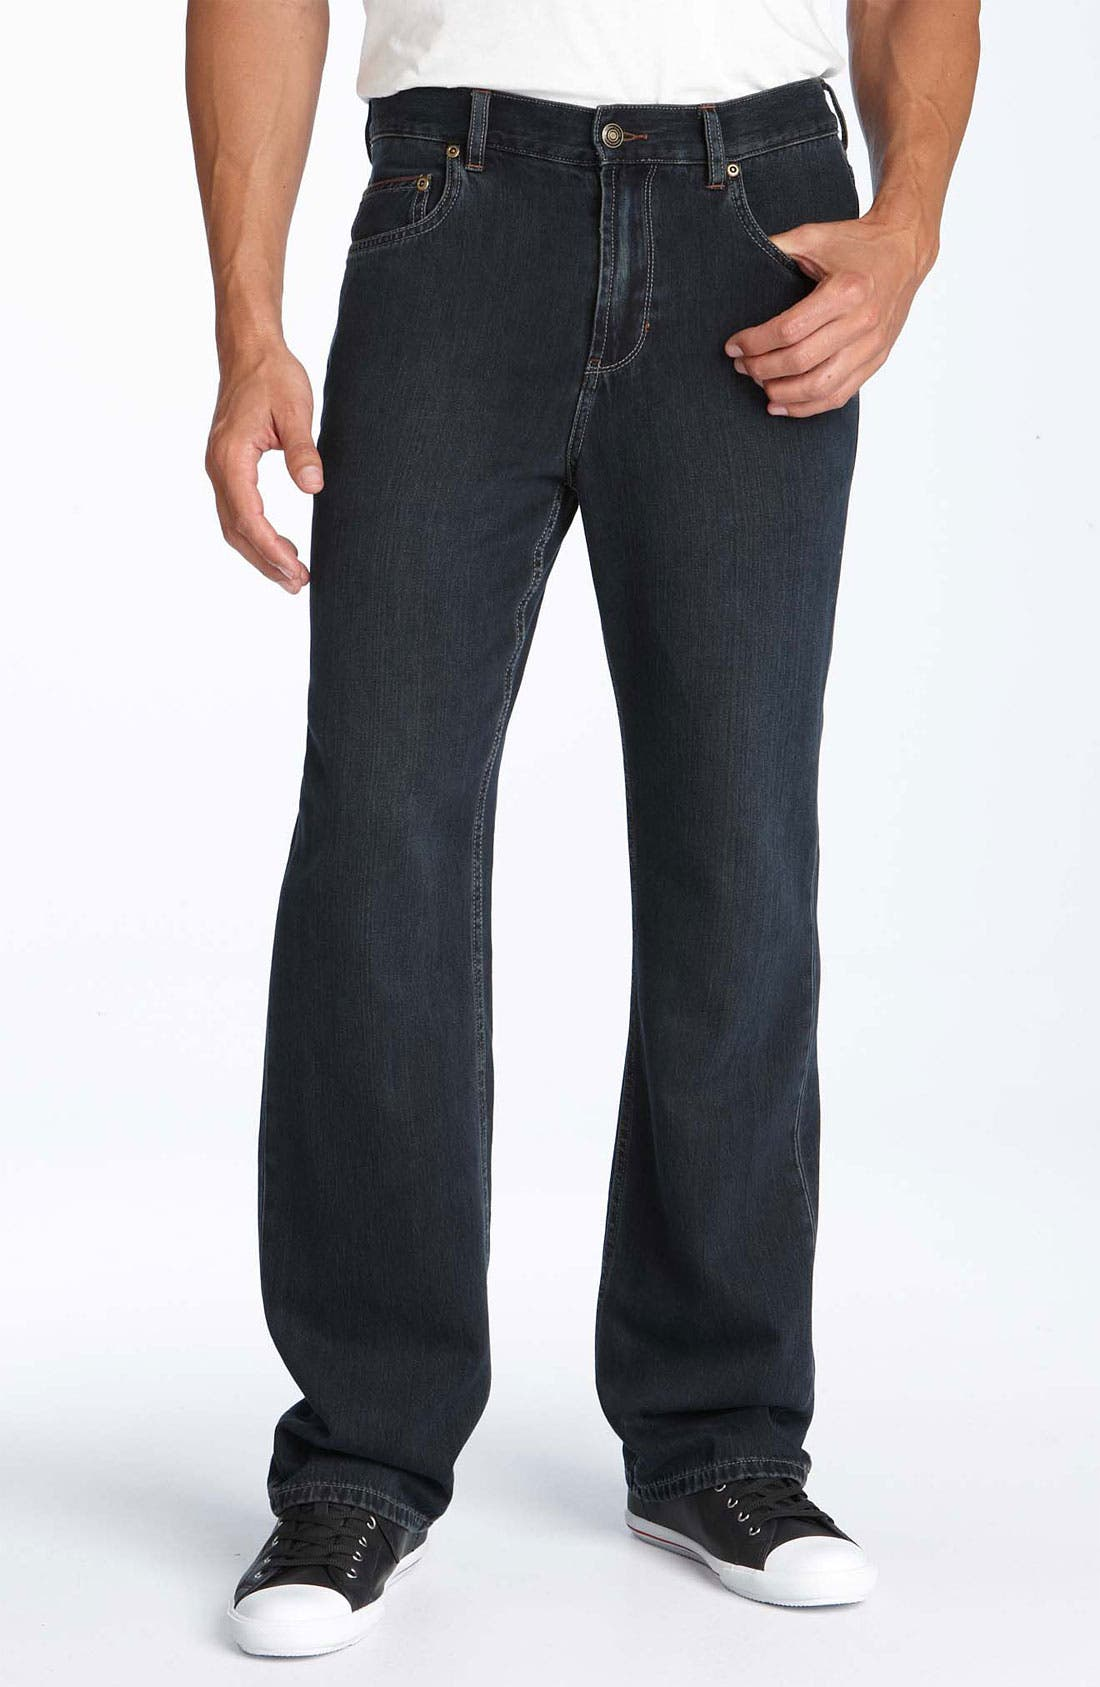 Alternate Image 1 Selected - Tommy Bahama Denim 'Island Ease' Straight Leg Jeans (Black Overdye)